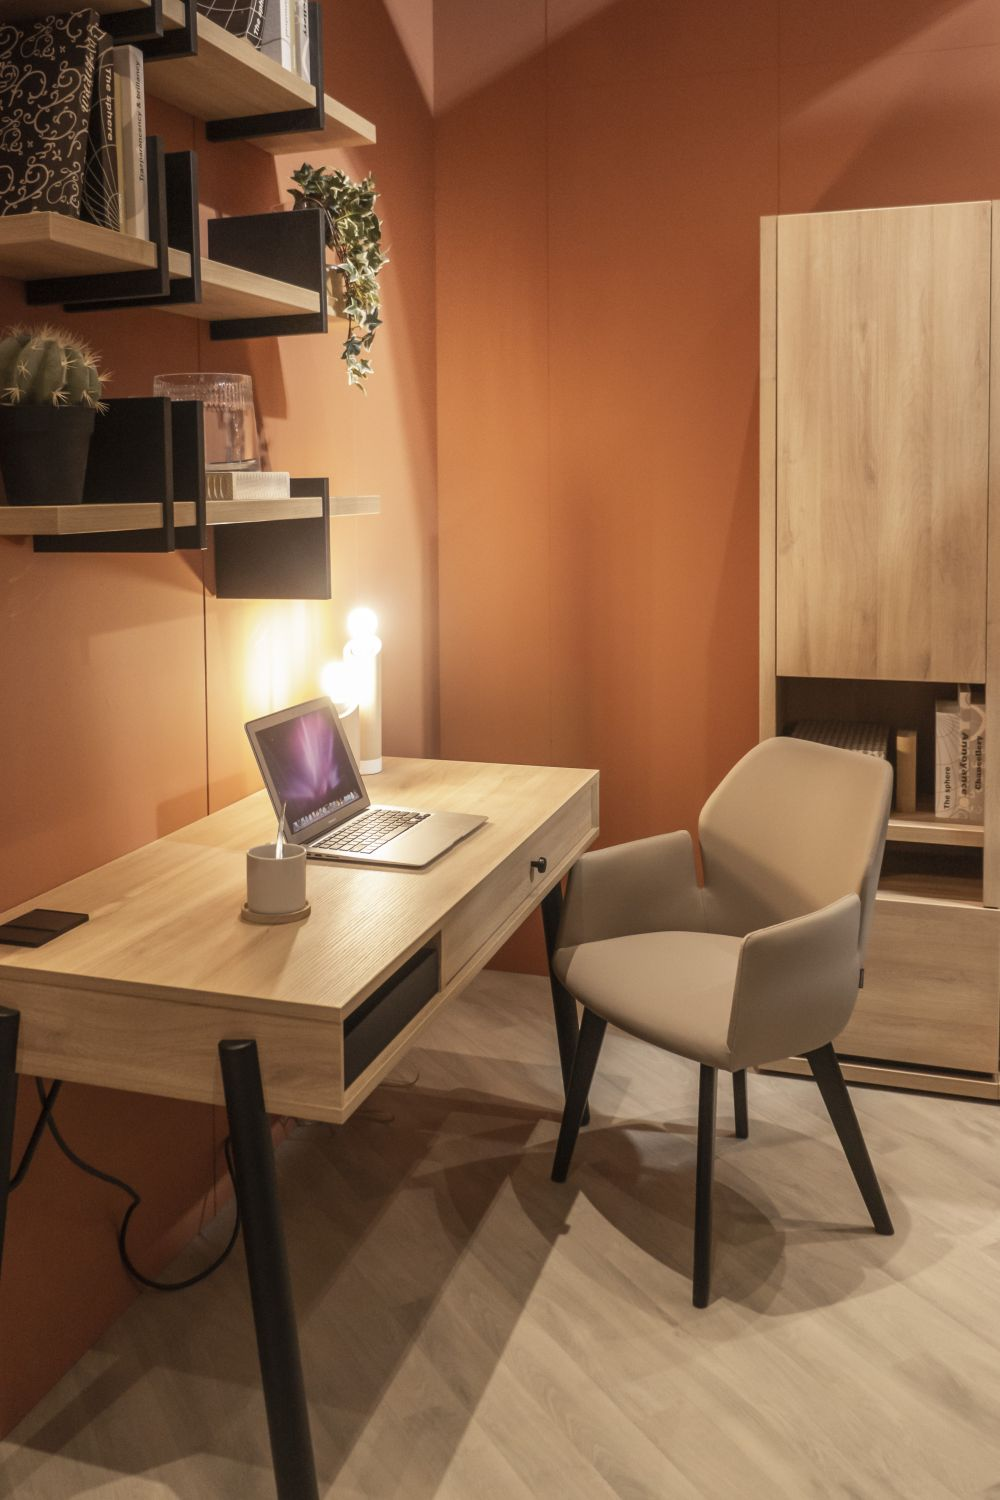 1571084351 673 in search for the perfect office desk our favorite design ideas - In Search For The Perfect Office Desk –  Our Favorite Design Ideas